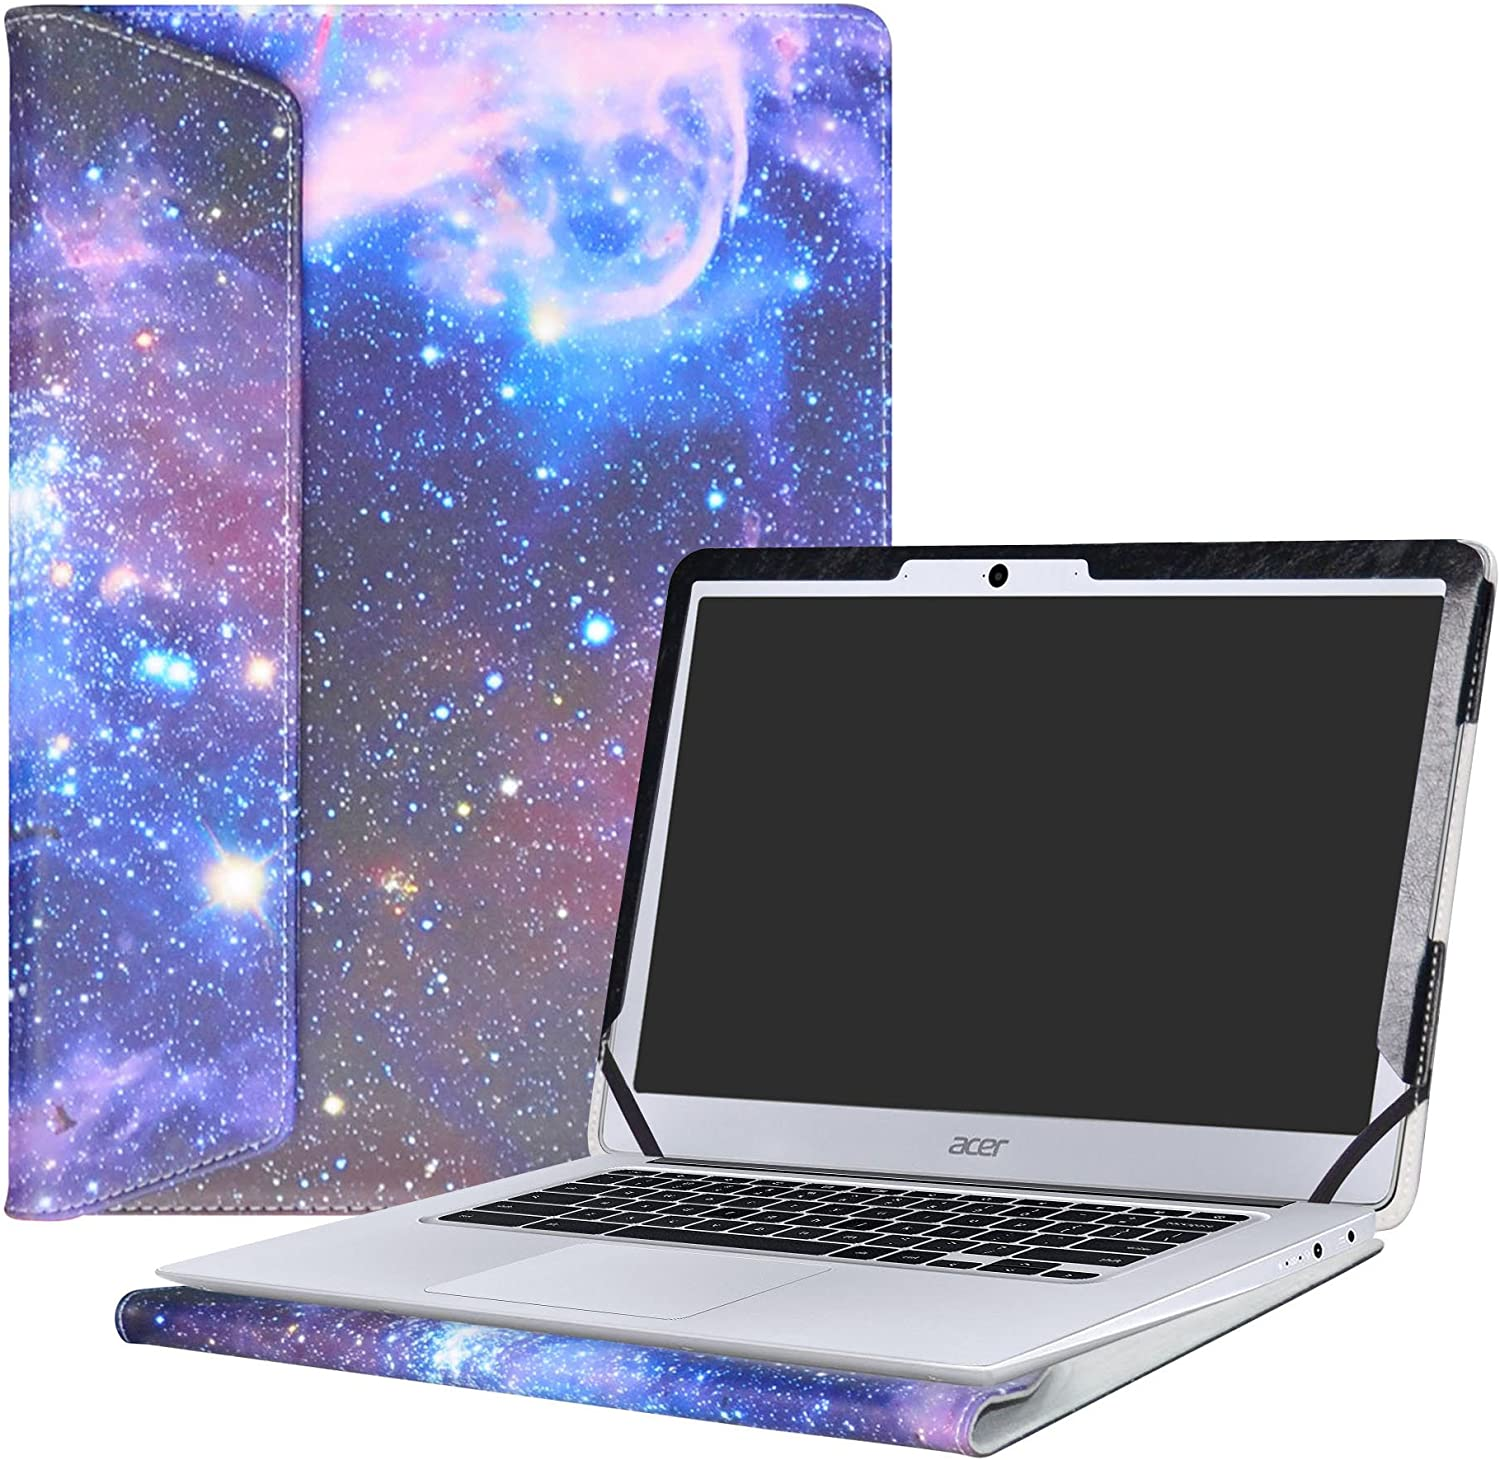 """Alapmk Protective Case Cover for 14"""" Acer Chromebook 14 CB3-431 Series Laptop(Not fit ACER CHROMEBOOK 14 for Work CP5-471 Series),Galaxy"""